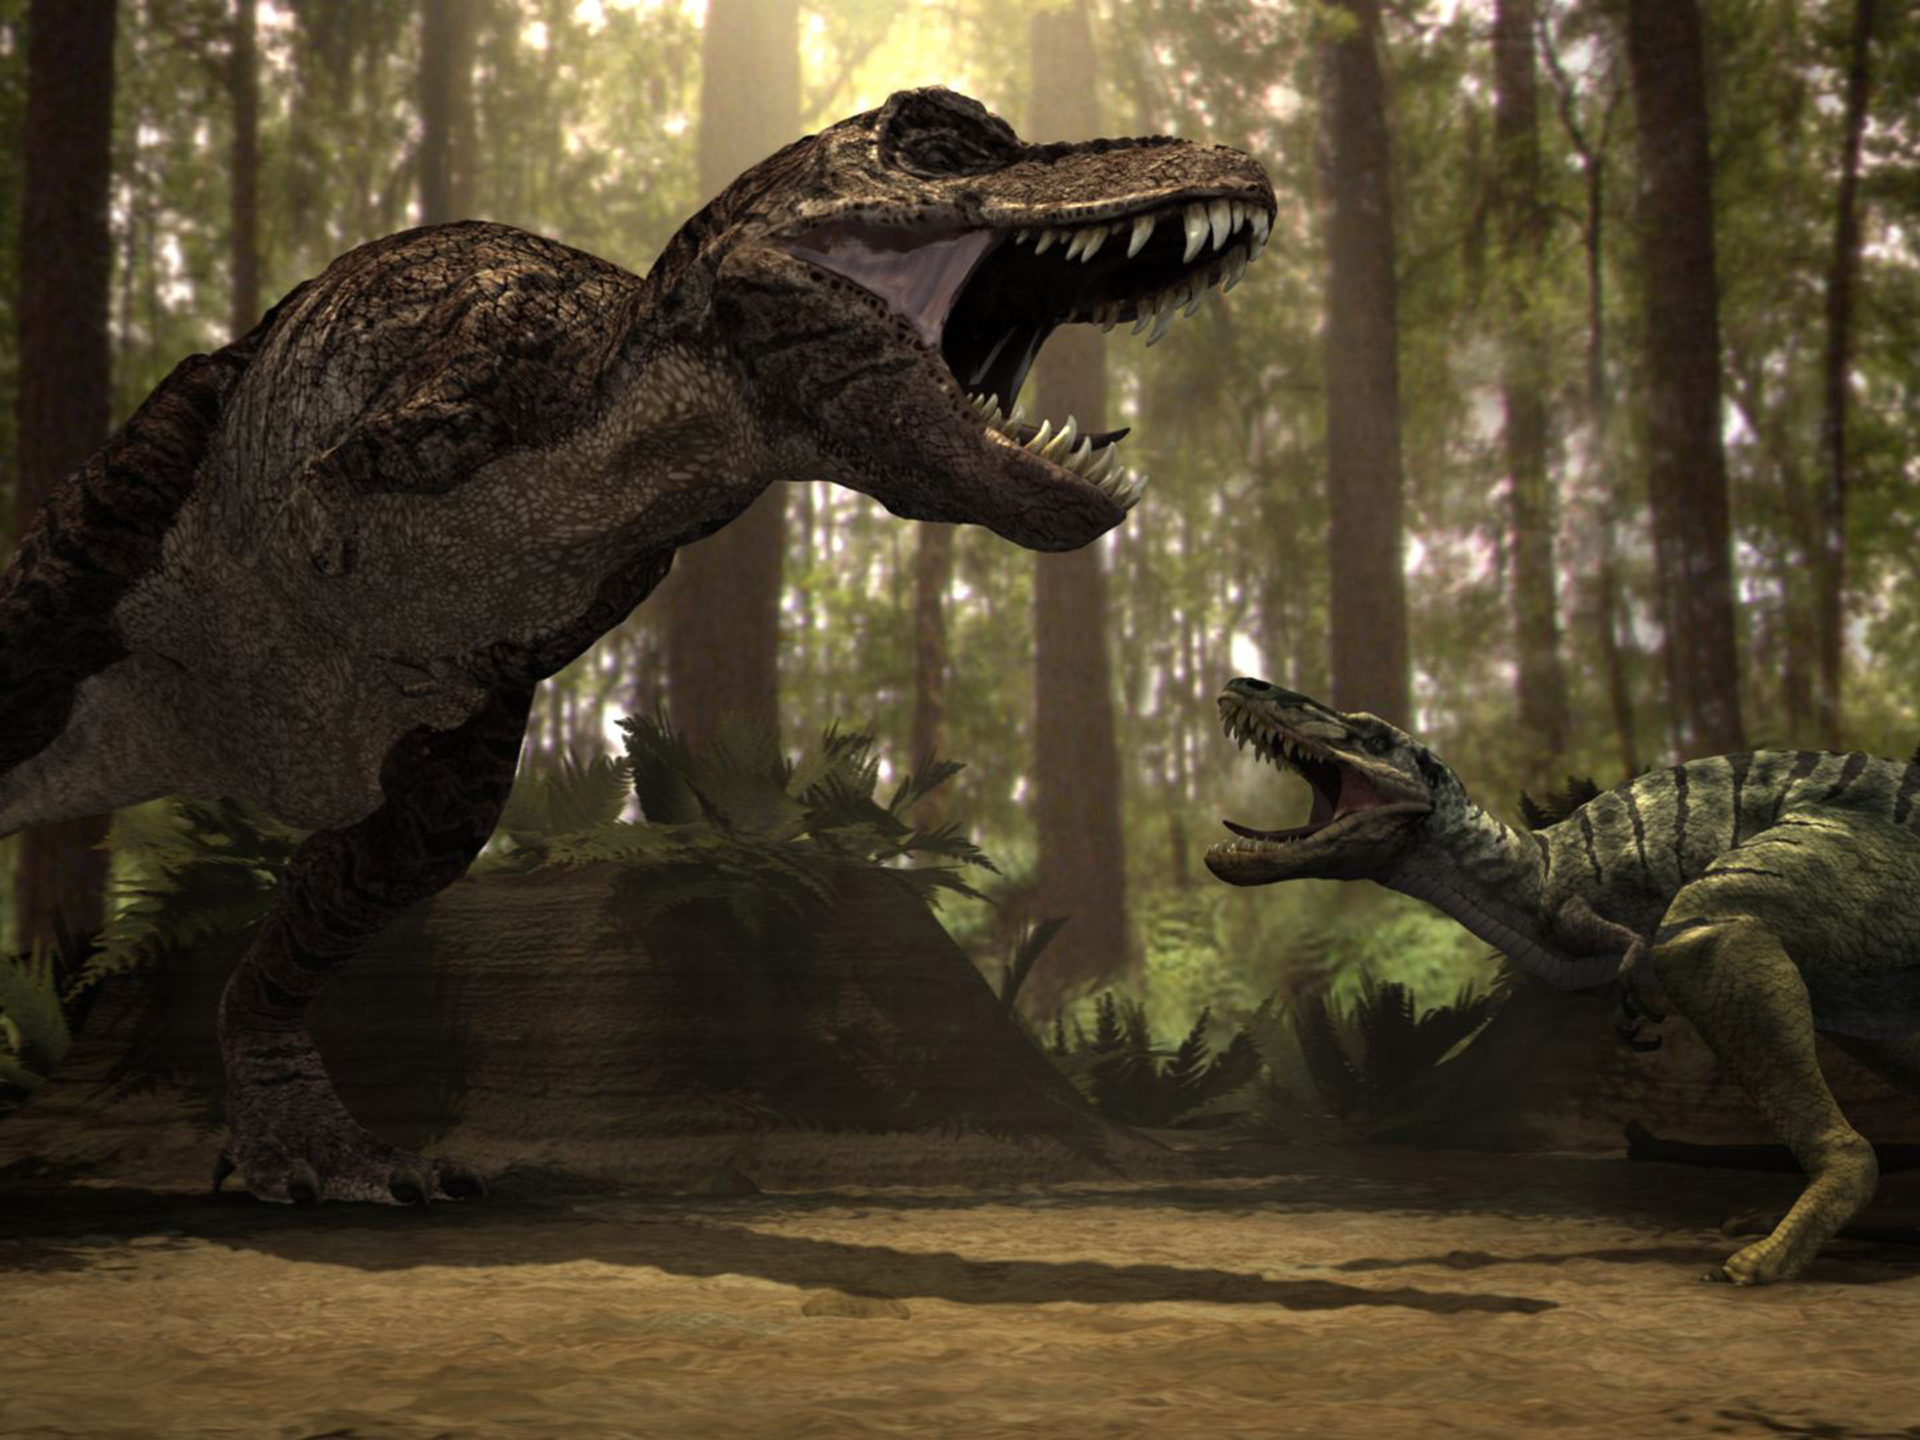 3d Live Wallpaper Free For Android Dinosaurs Wallpapers Hd 0976 Wallpapers13 Com